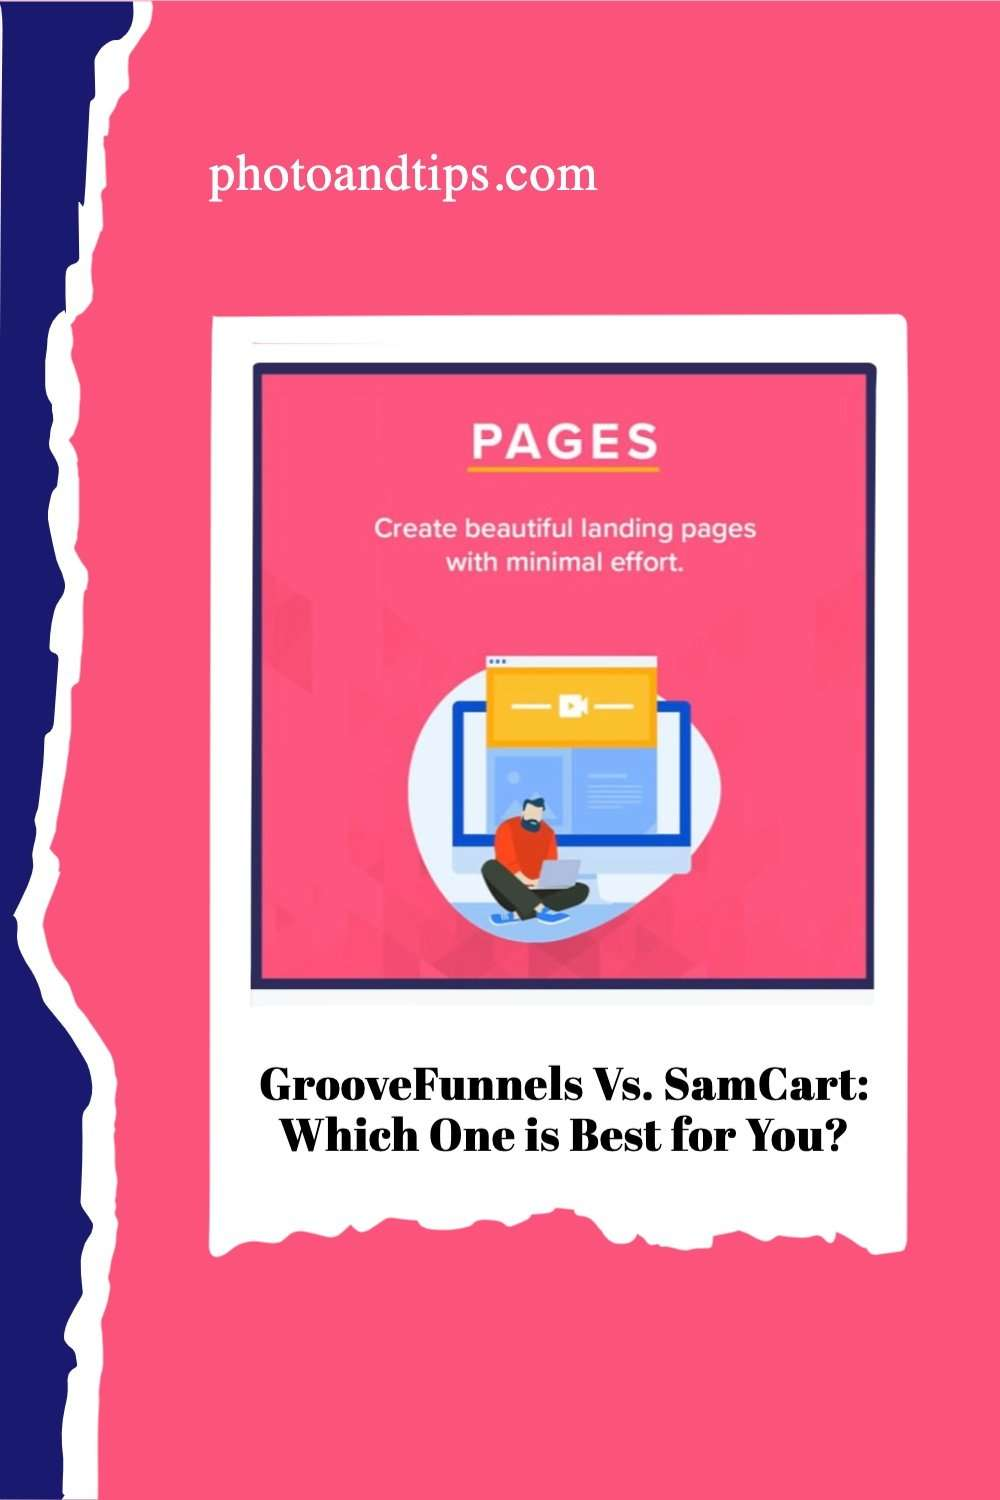 GrooveFunnels Vs. SamCart - Which One is Best for You